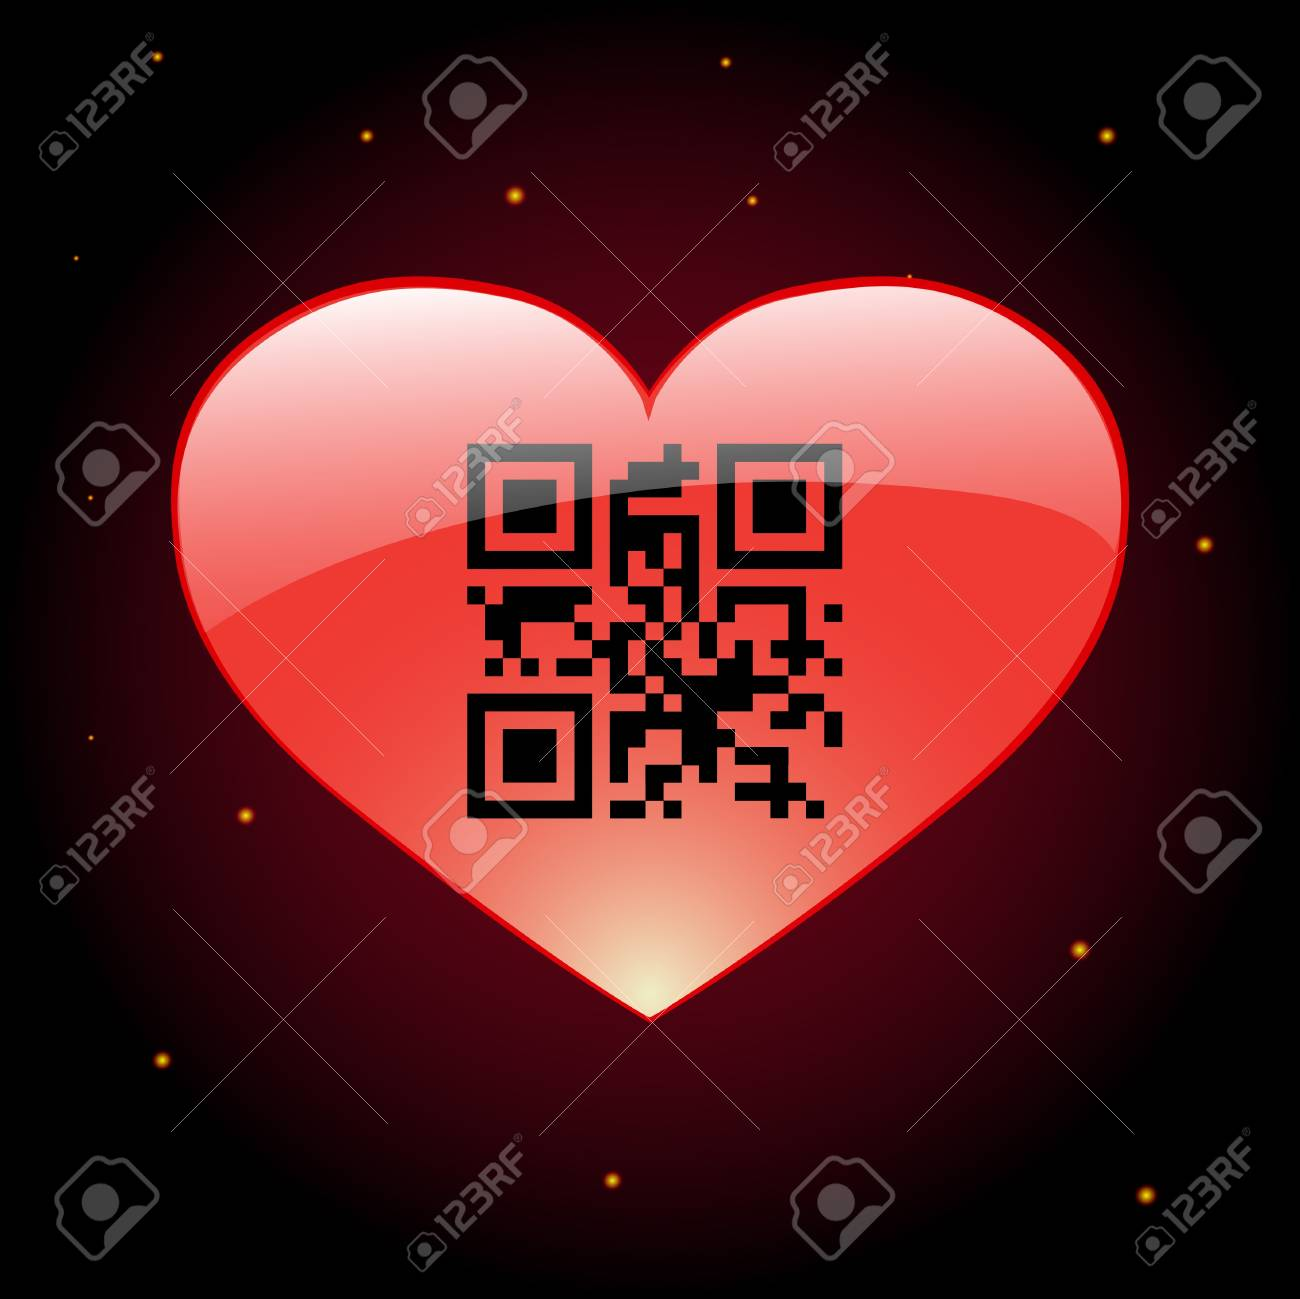 Glossy heart with qr code inside Stock Vector - 17728857